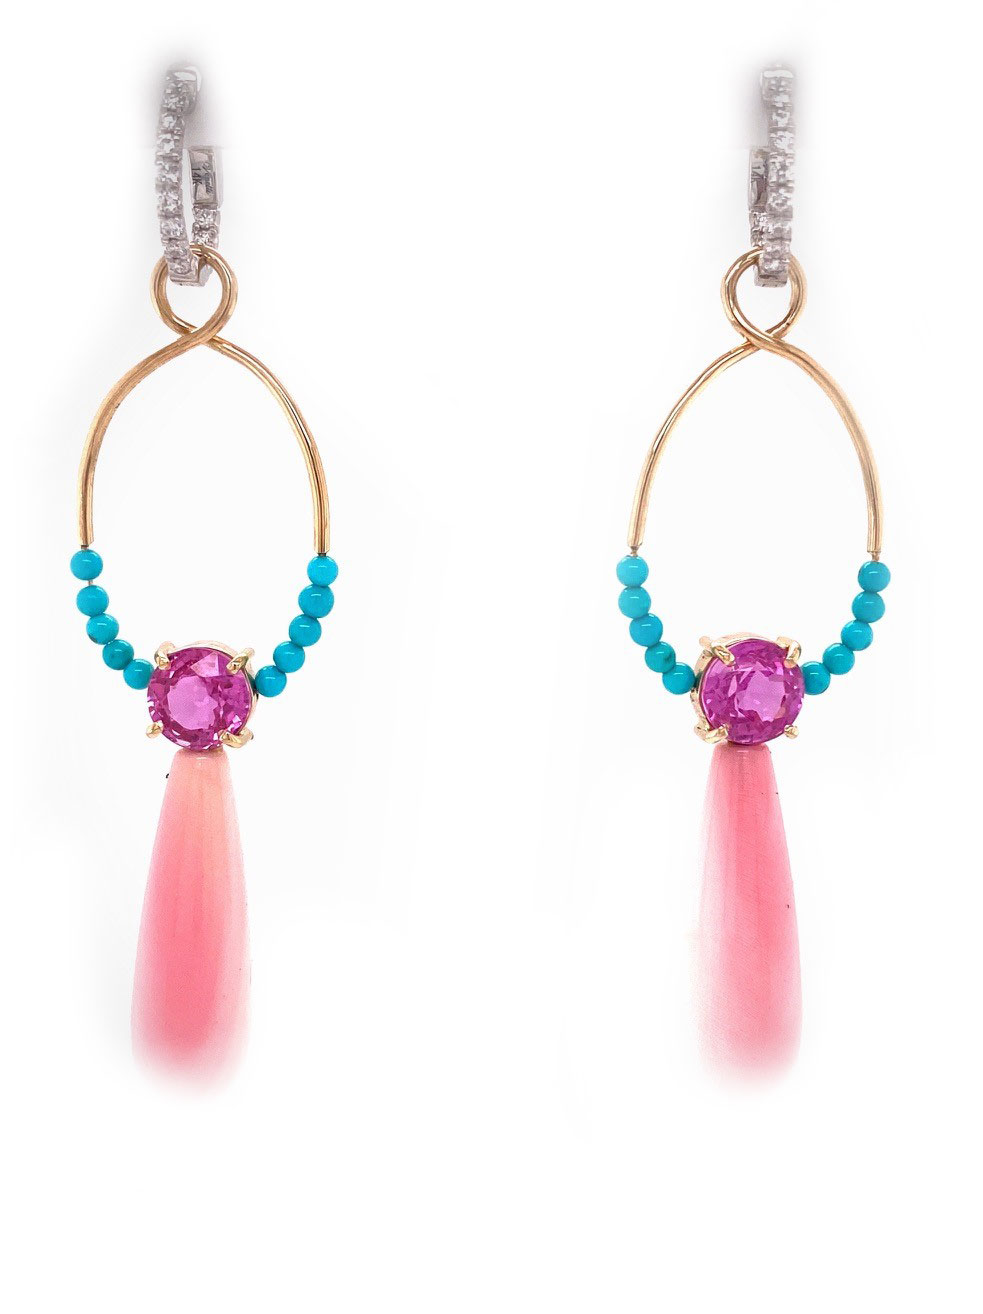 One-of-a-Kind Ear Pendants showcasing 3.45 carats of Pink Sapphires accented with Queen Conch Shell Briollettes and Sleeping Beauty Turquoise beads and handmade in 14K gold